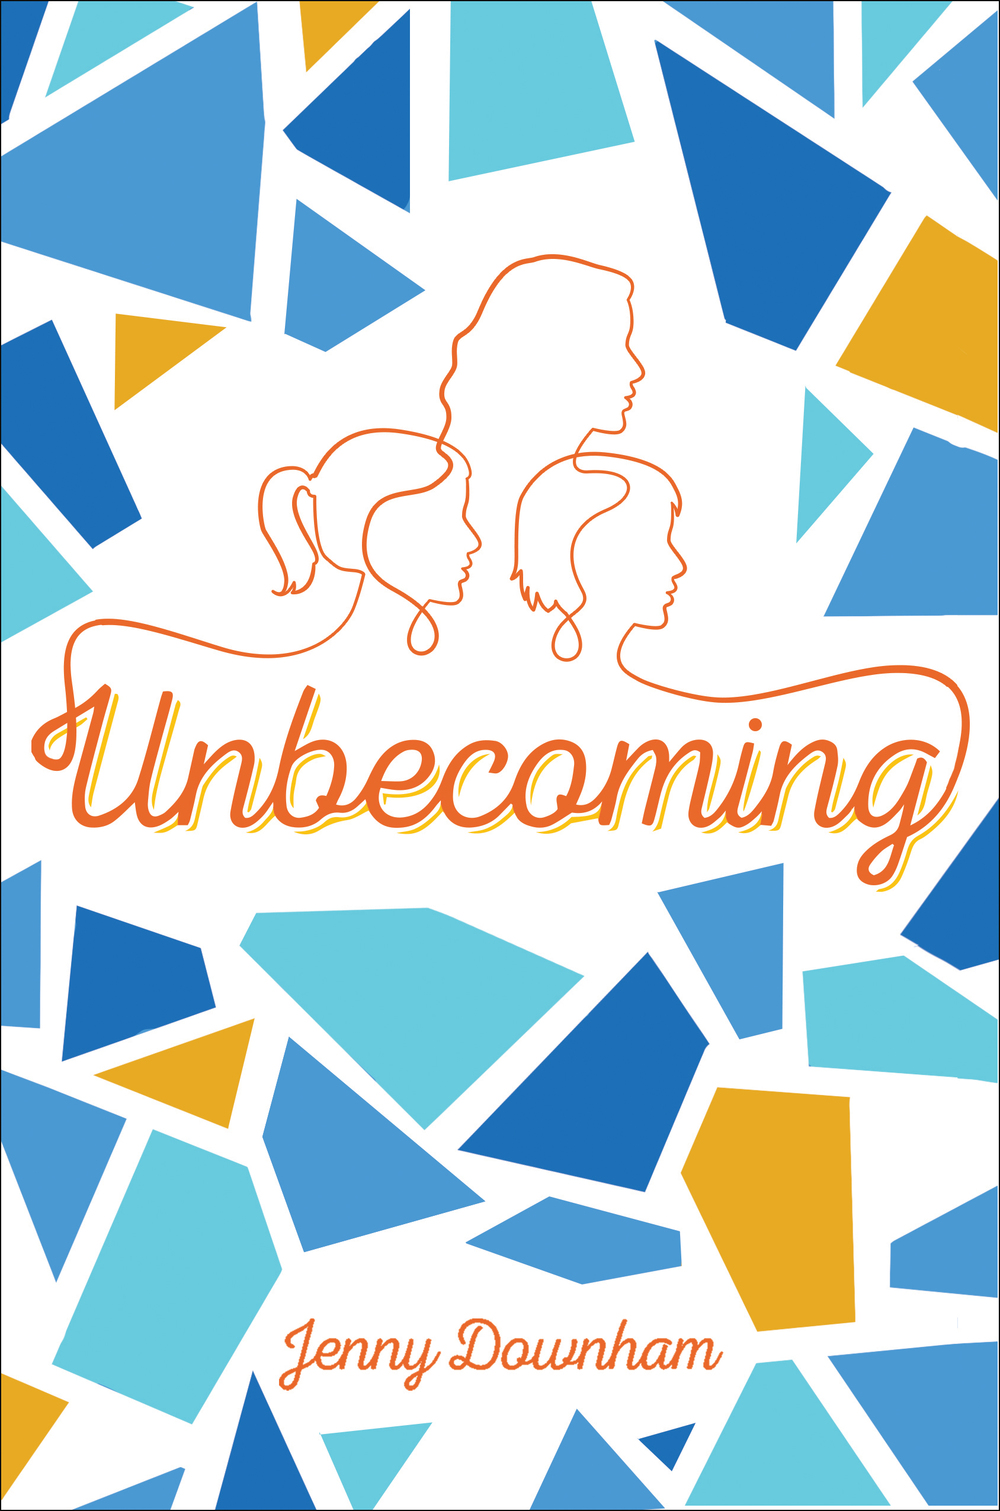 Unbecoming-reject2.jpg